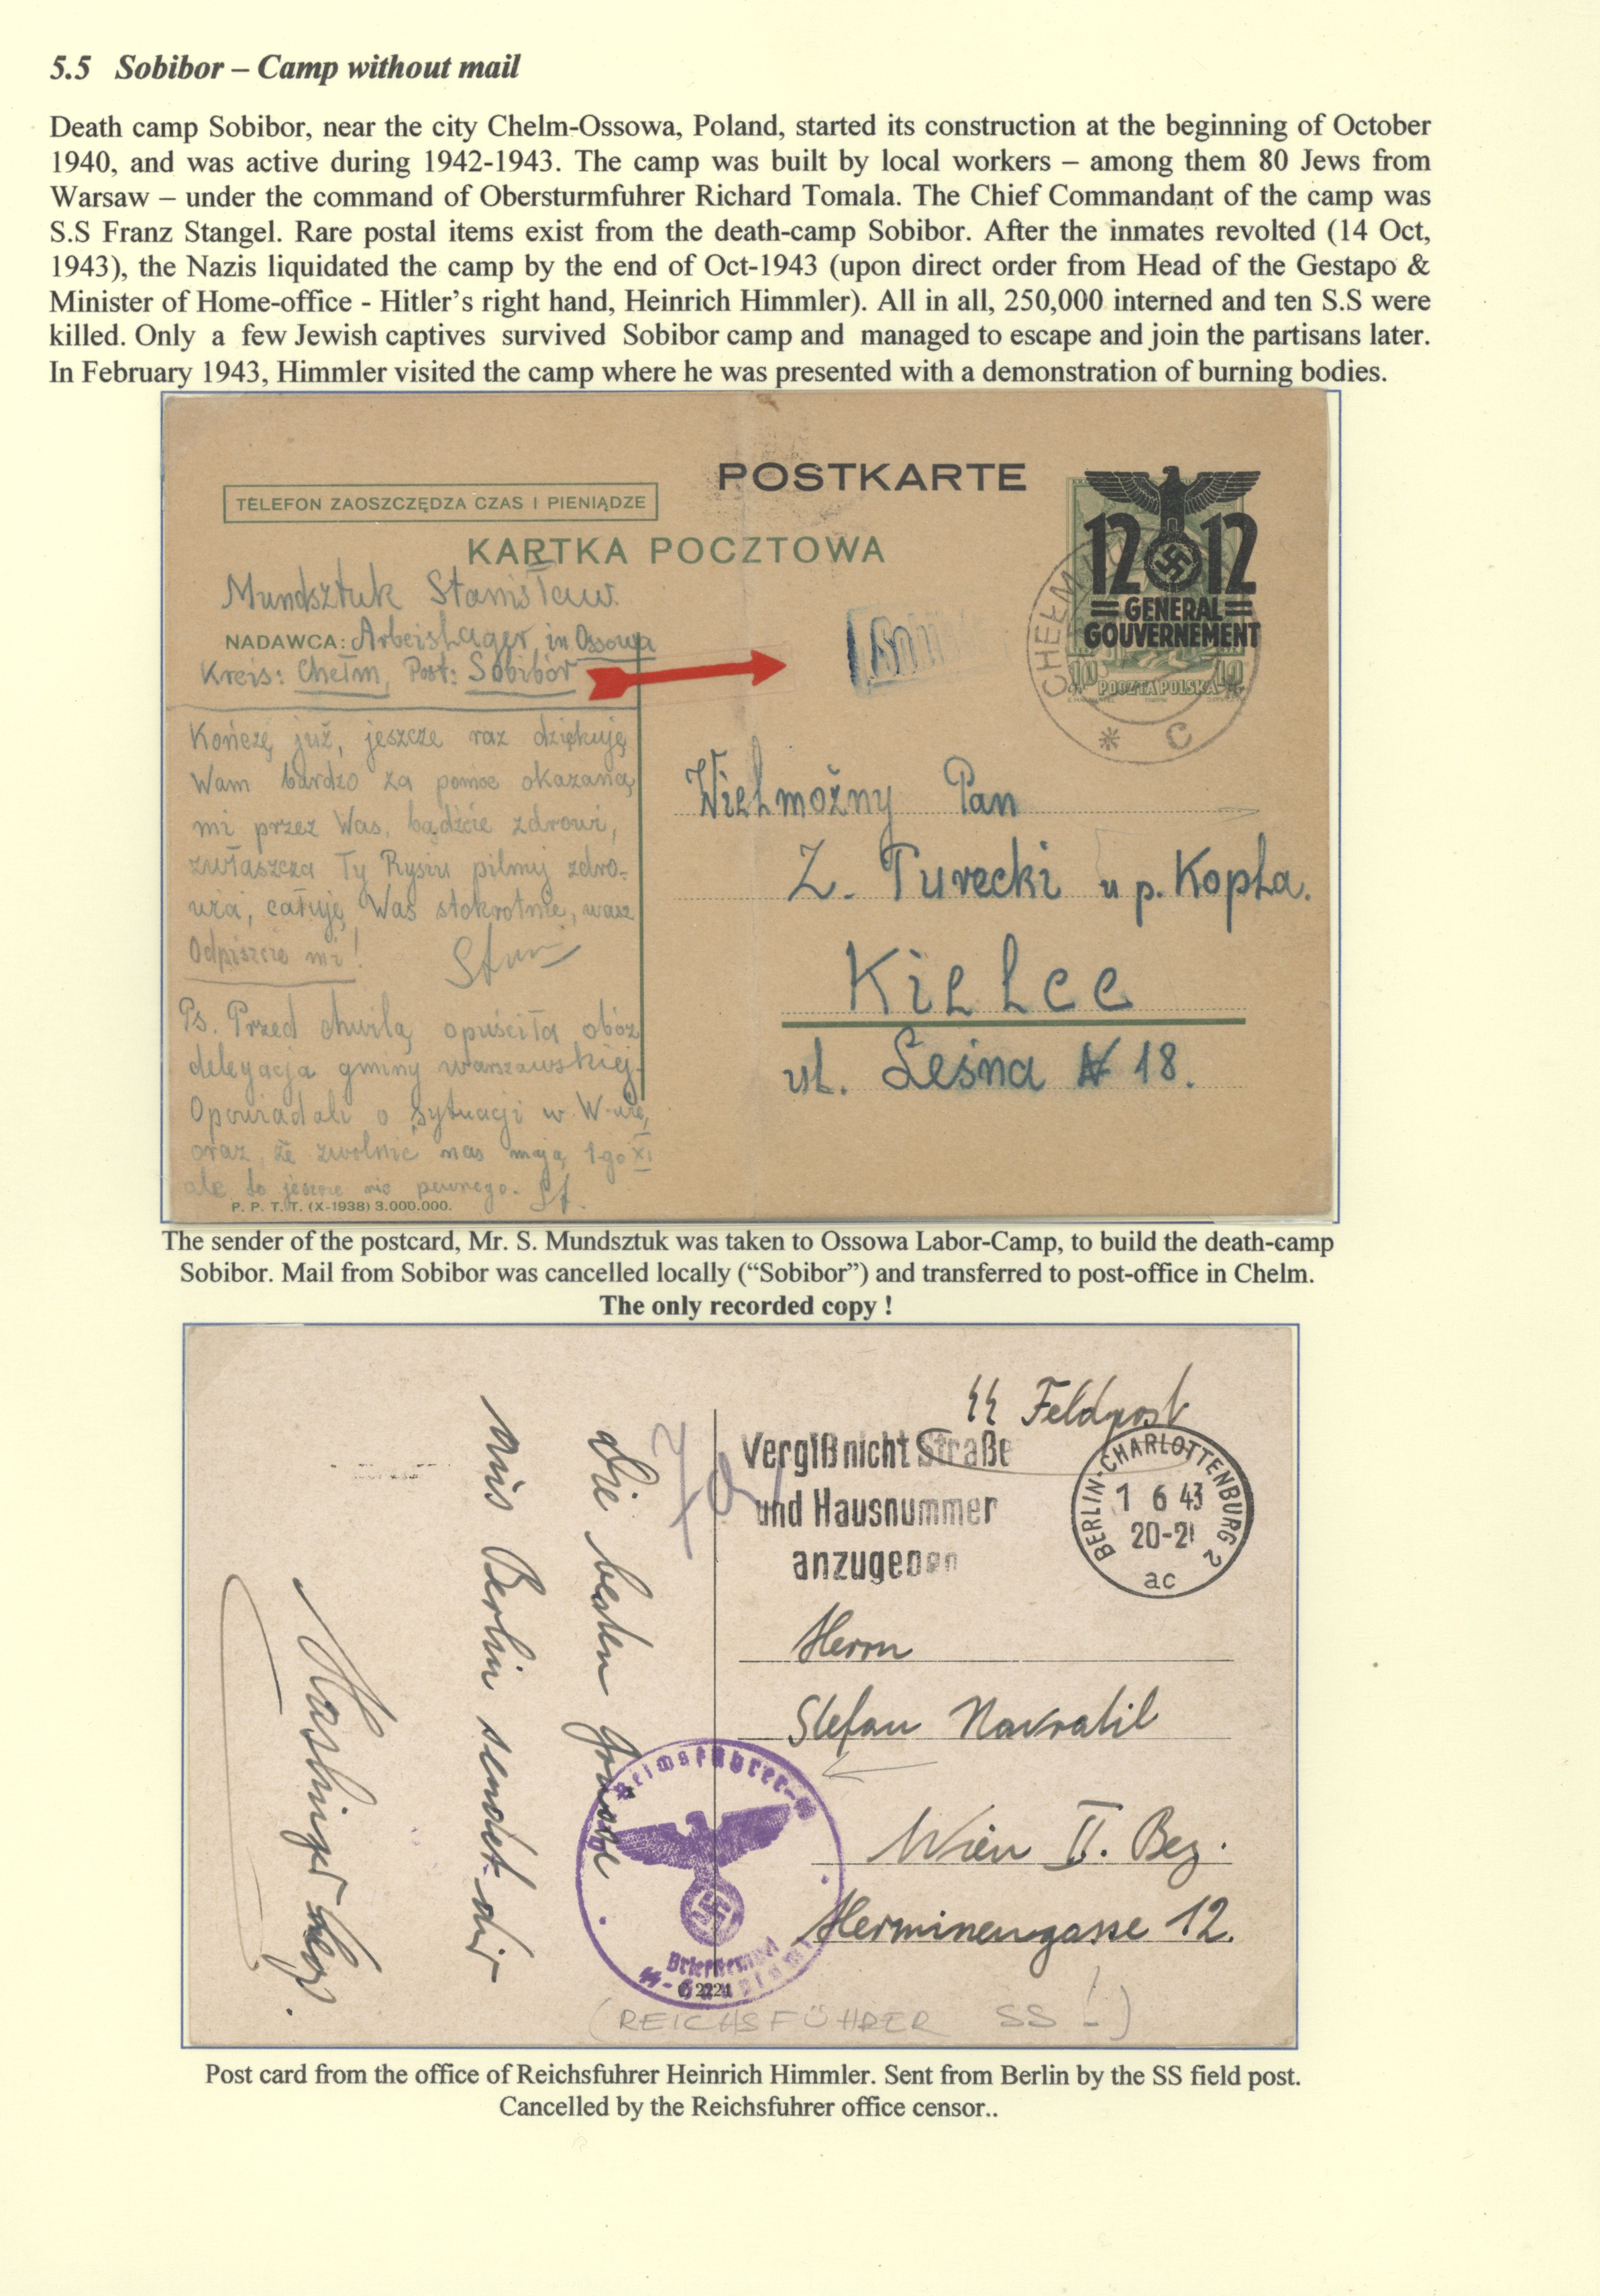 Stamp Auction Thematik Judaika Judaism 41 Special More Display Circuits Hobby Category List Email David A Lot 652 Auktionshaus Christoph Grtner Gmbh Co